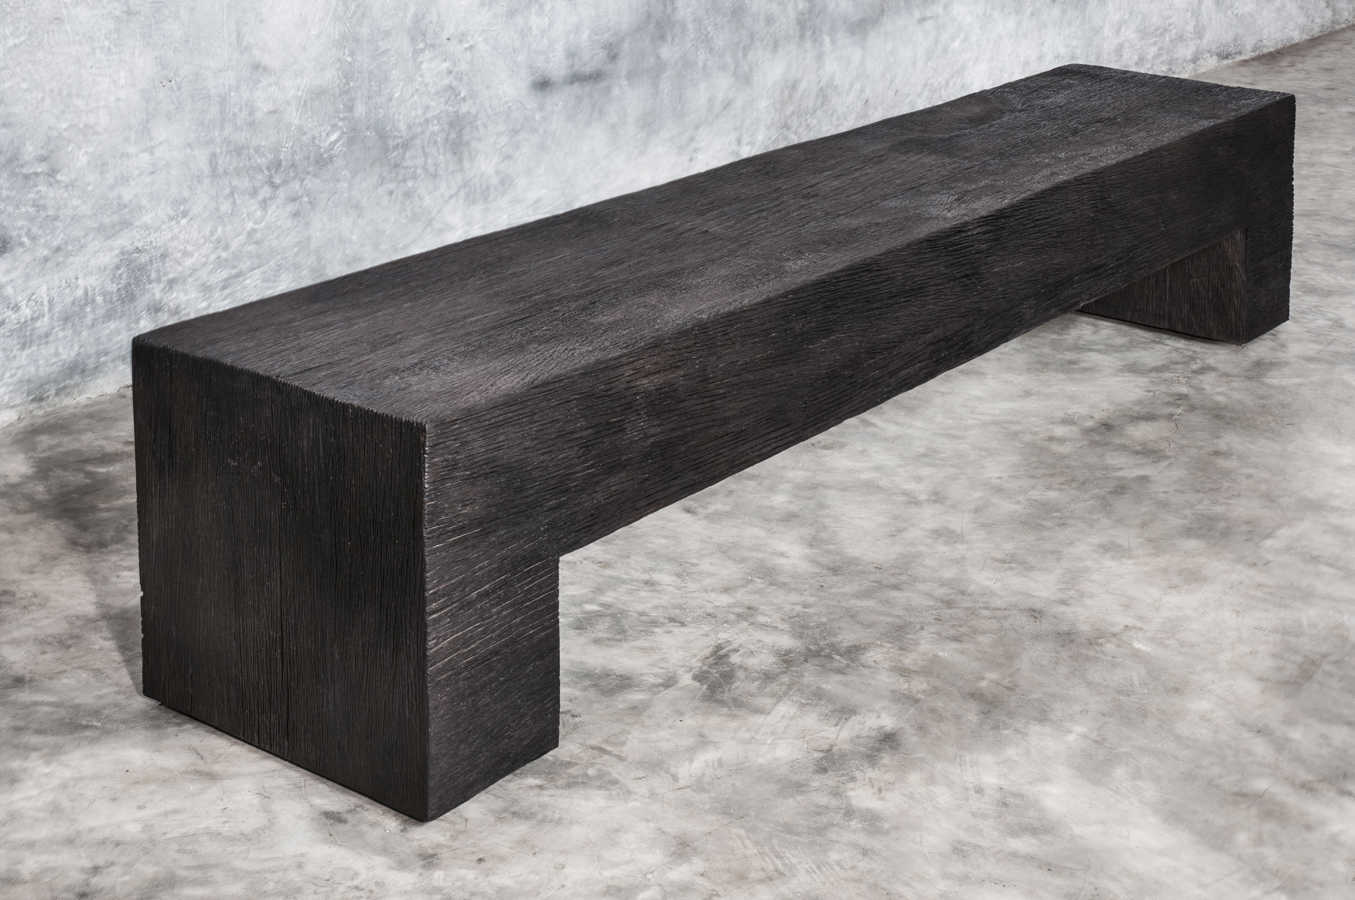 KALIMANTAN COLLECTION ERODED IRON WOOD BENCH POLOS 1 - 220x40x42cm 87x16x17' Custom size on request